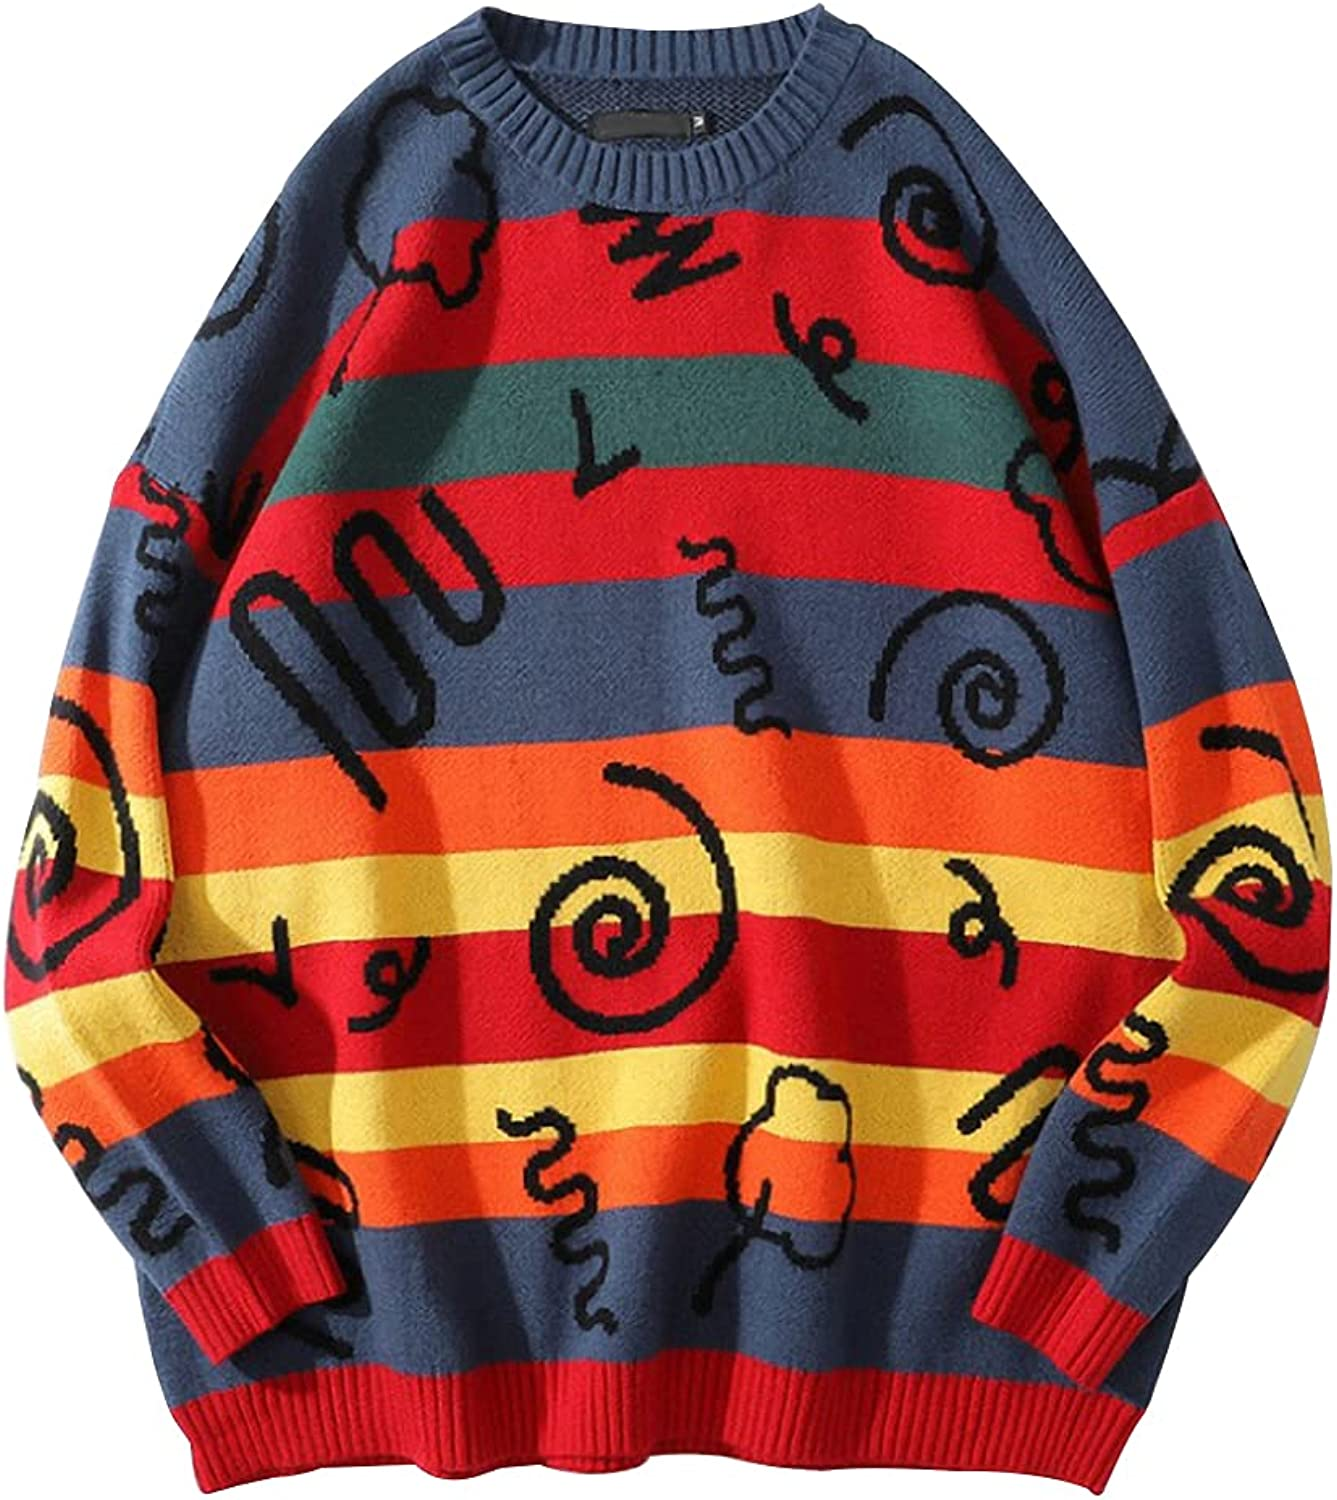 Gihuo Men's Casual Loose Color Block Long Sleeve Multi Patterns Knit Pullover Tops